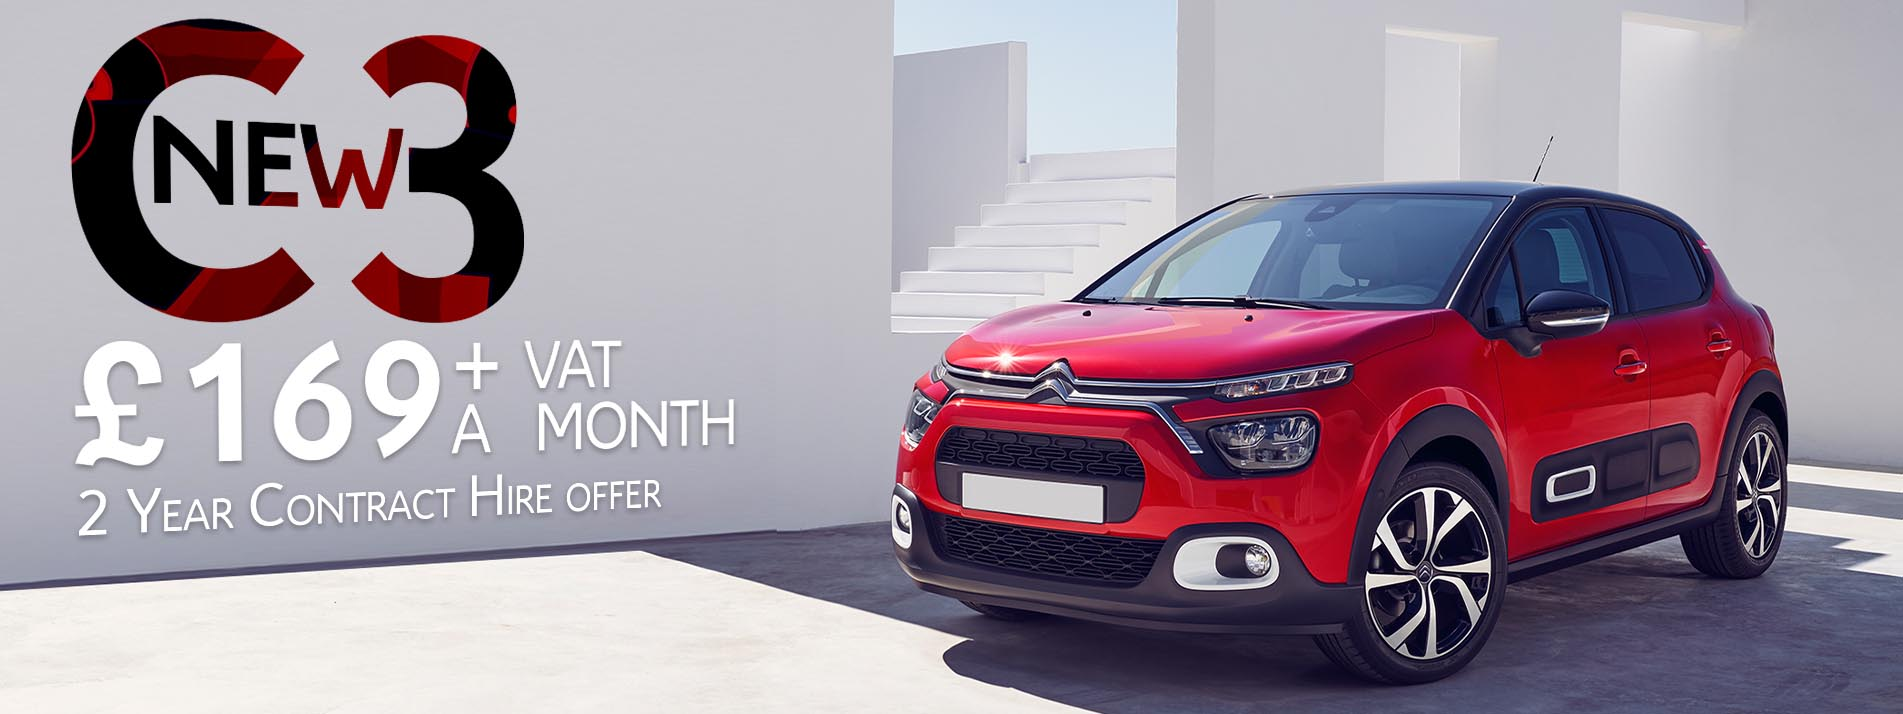 new-citroen-c3-october-2-year-contract-hire-offer-m-sli